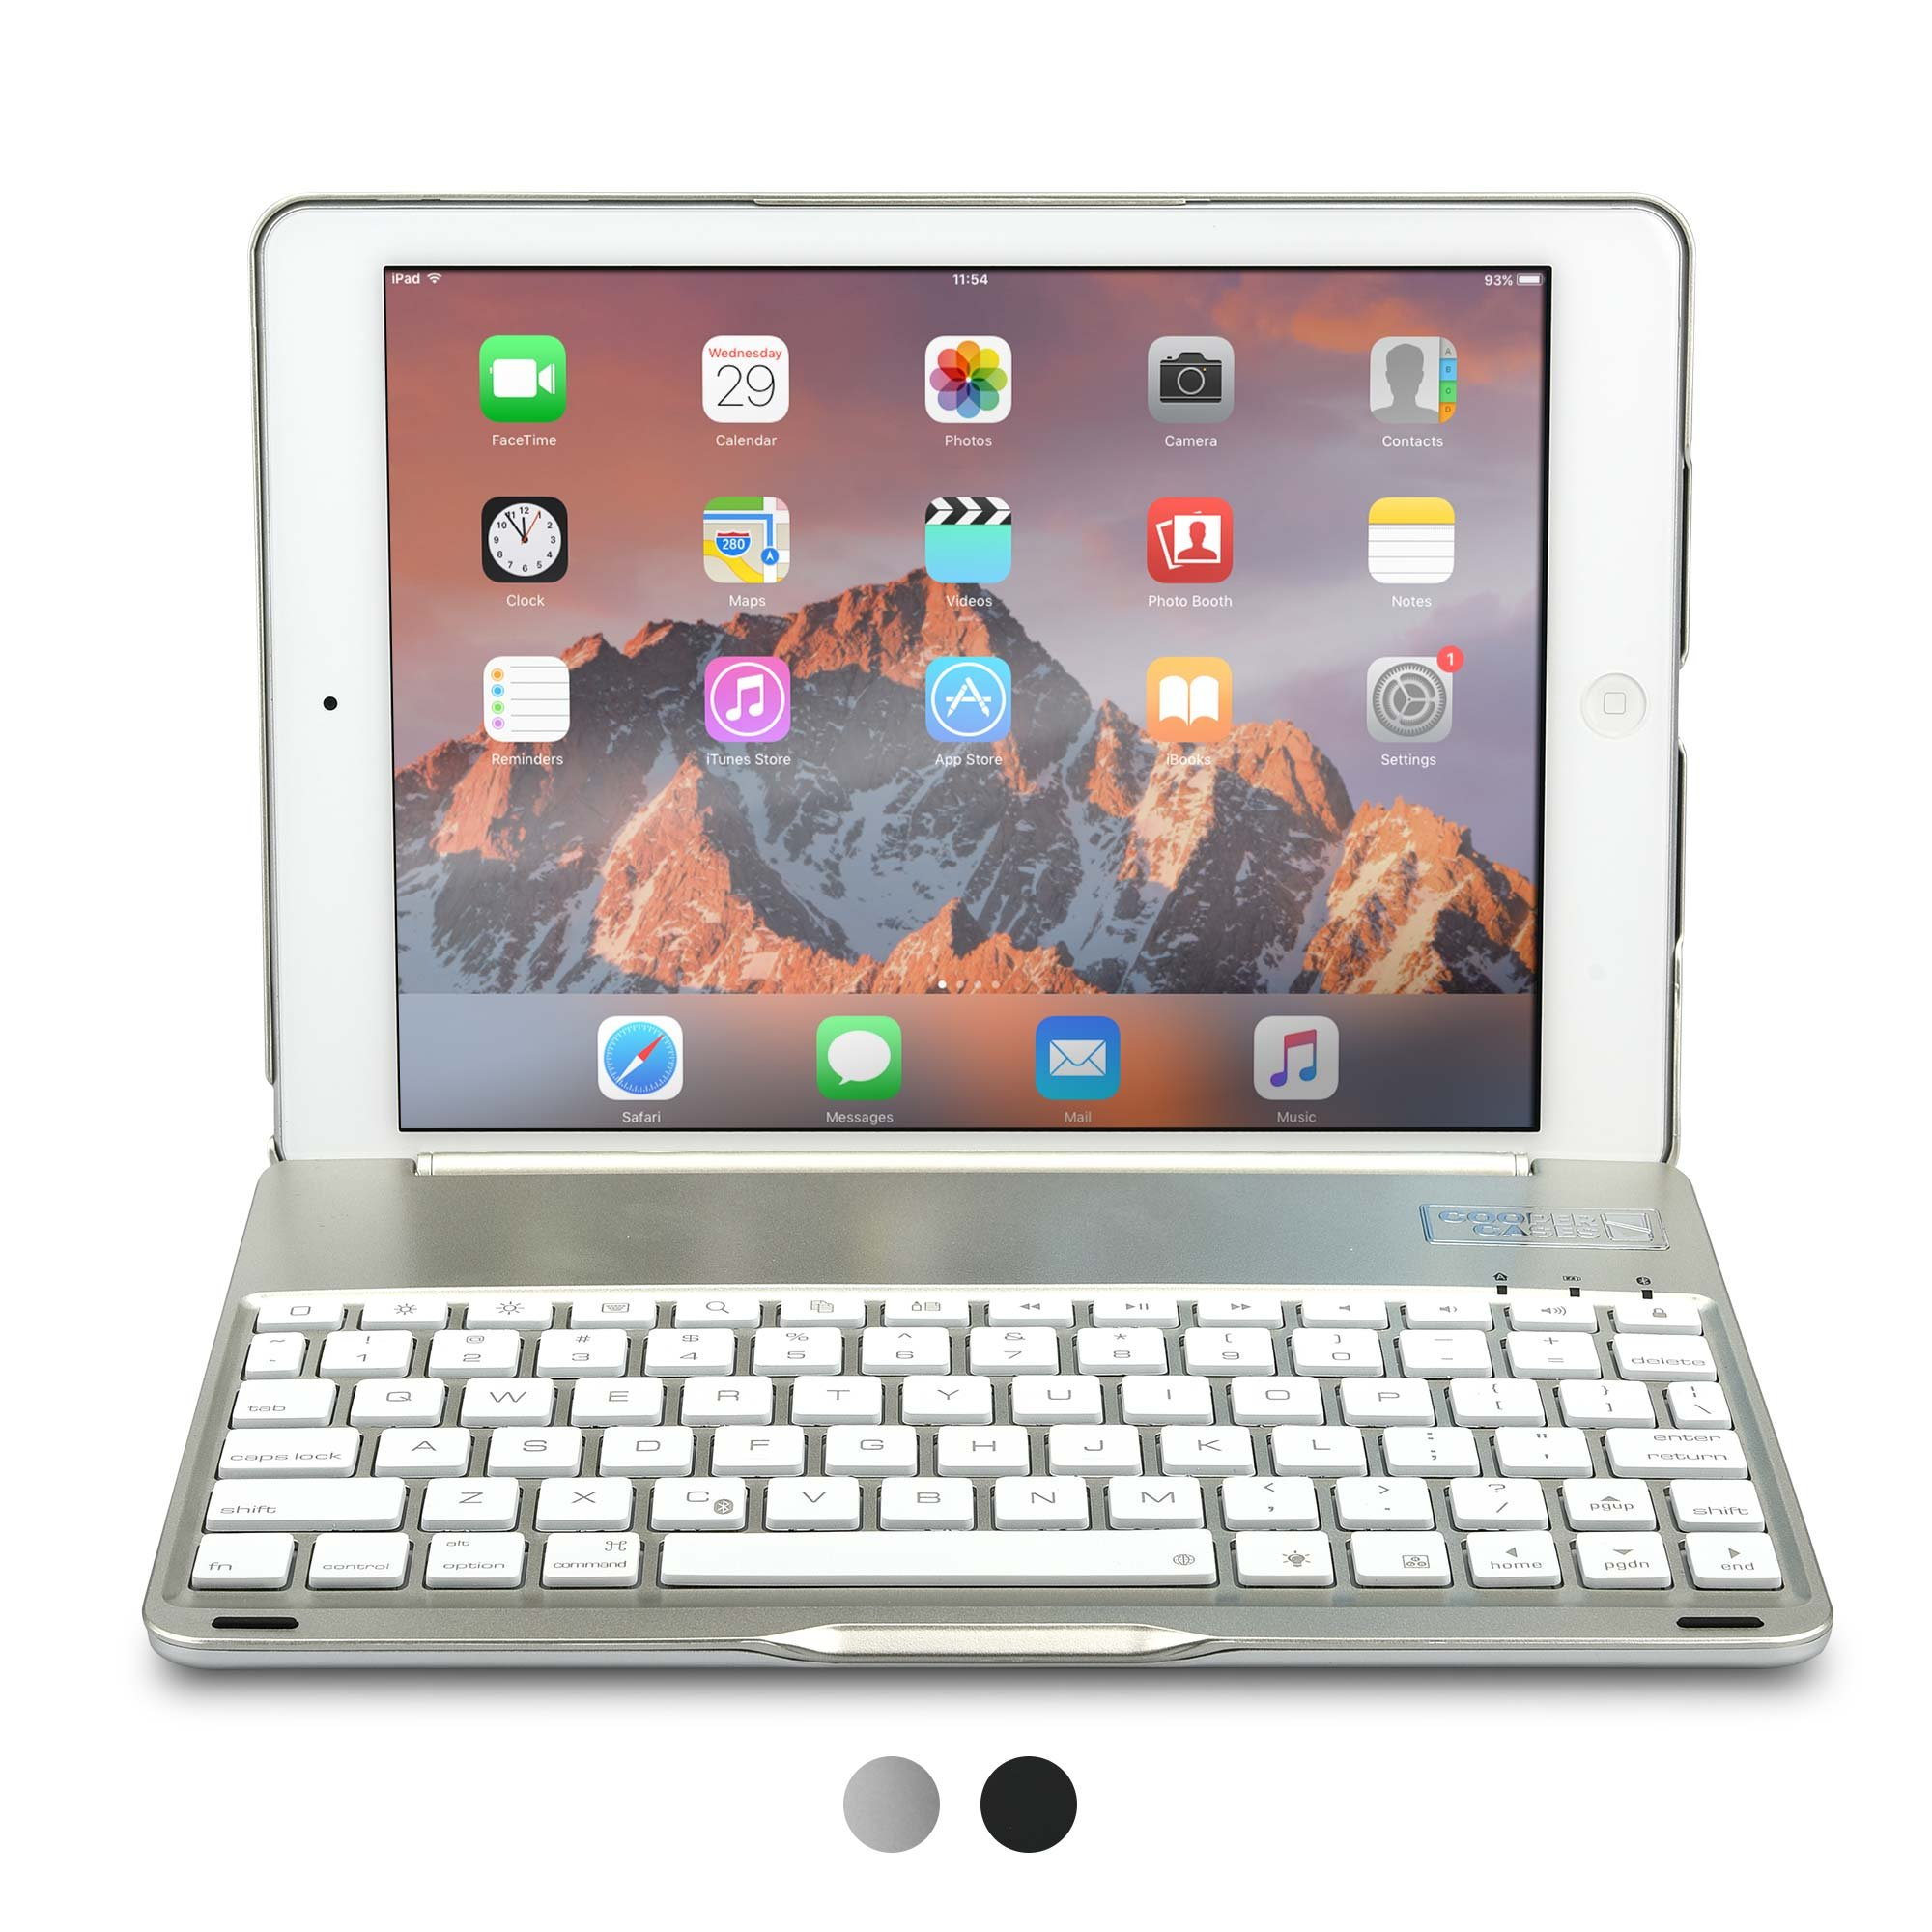 iPad Air Keyboard case, COOPER NOTEKEE F8S Backlit LED Bluetooth Wireless Rechargeable Keyboard Portable Laptop Macbook Clamshell Clamcase Cover with 7 Backlight Colors for Apple iPad Air (Silver)